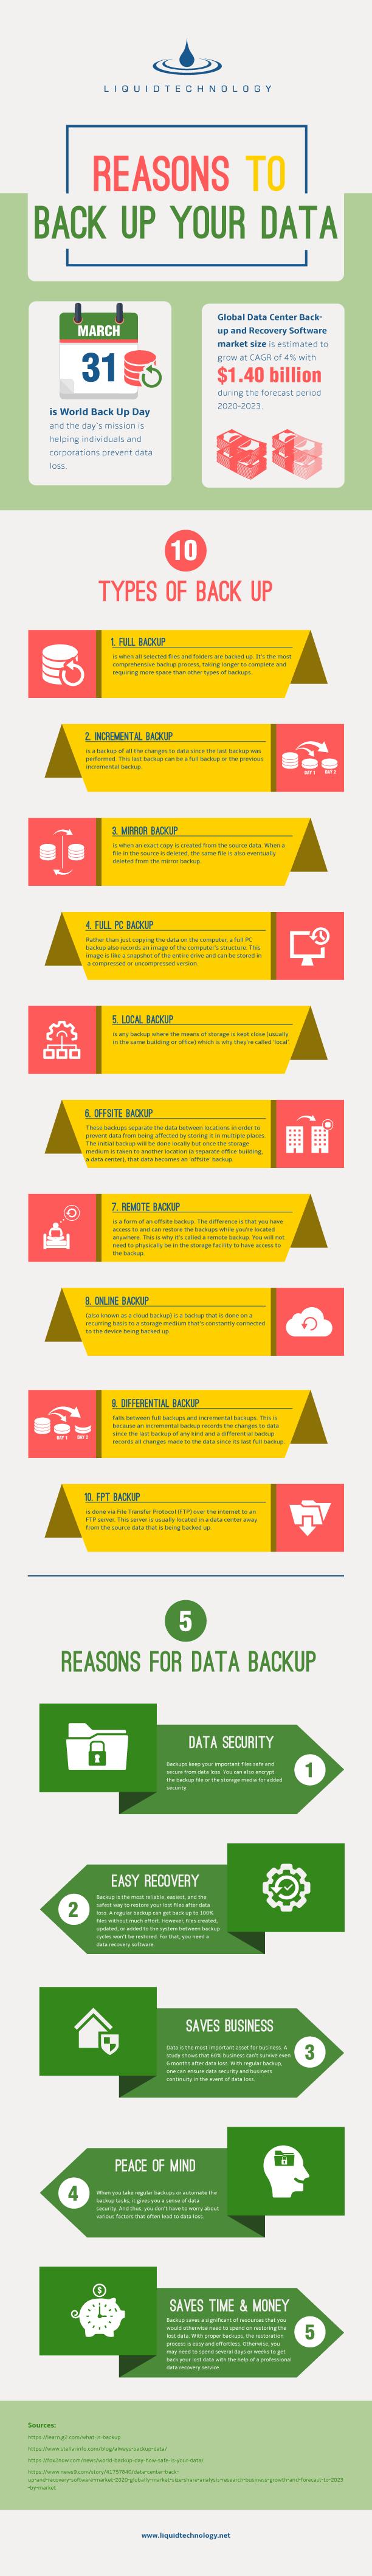 Reasons to backup your data infographic